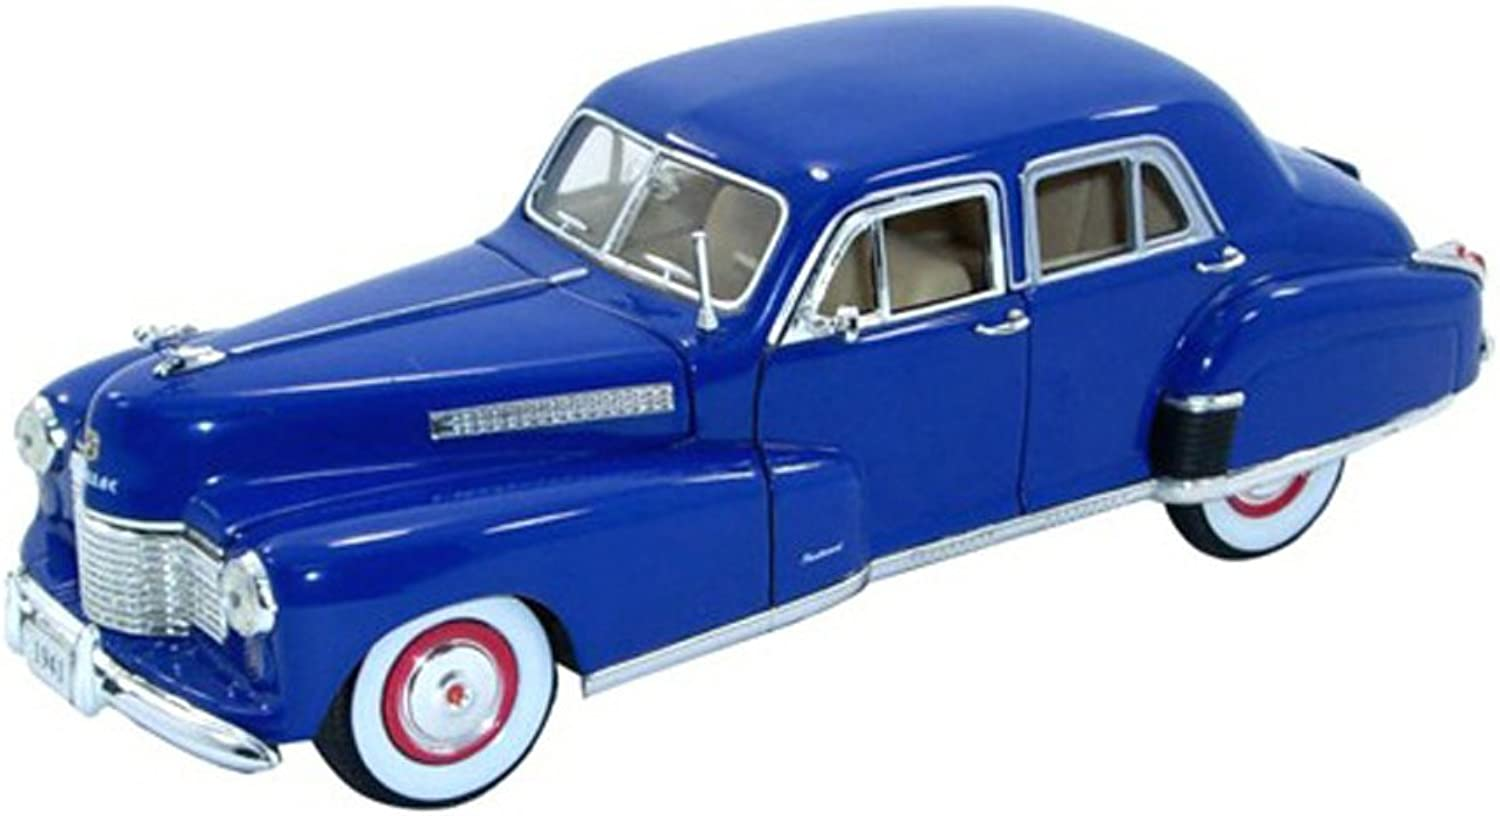 1941 Cadillac Series 60 Special, bluee  Signature Models 32357  1 32 Scale Diecast Model Toy Car